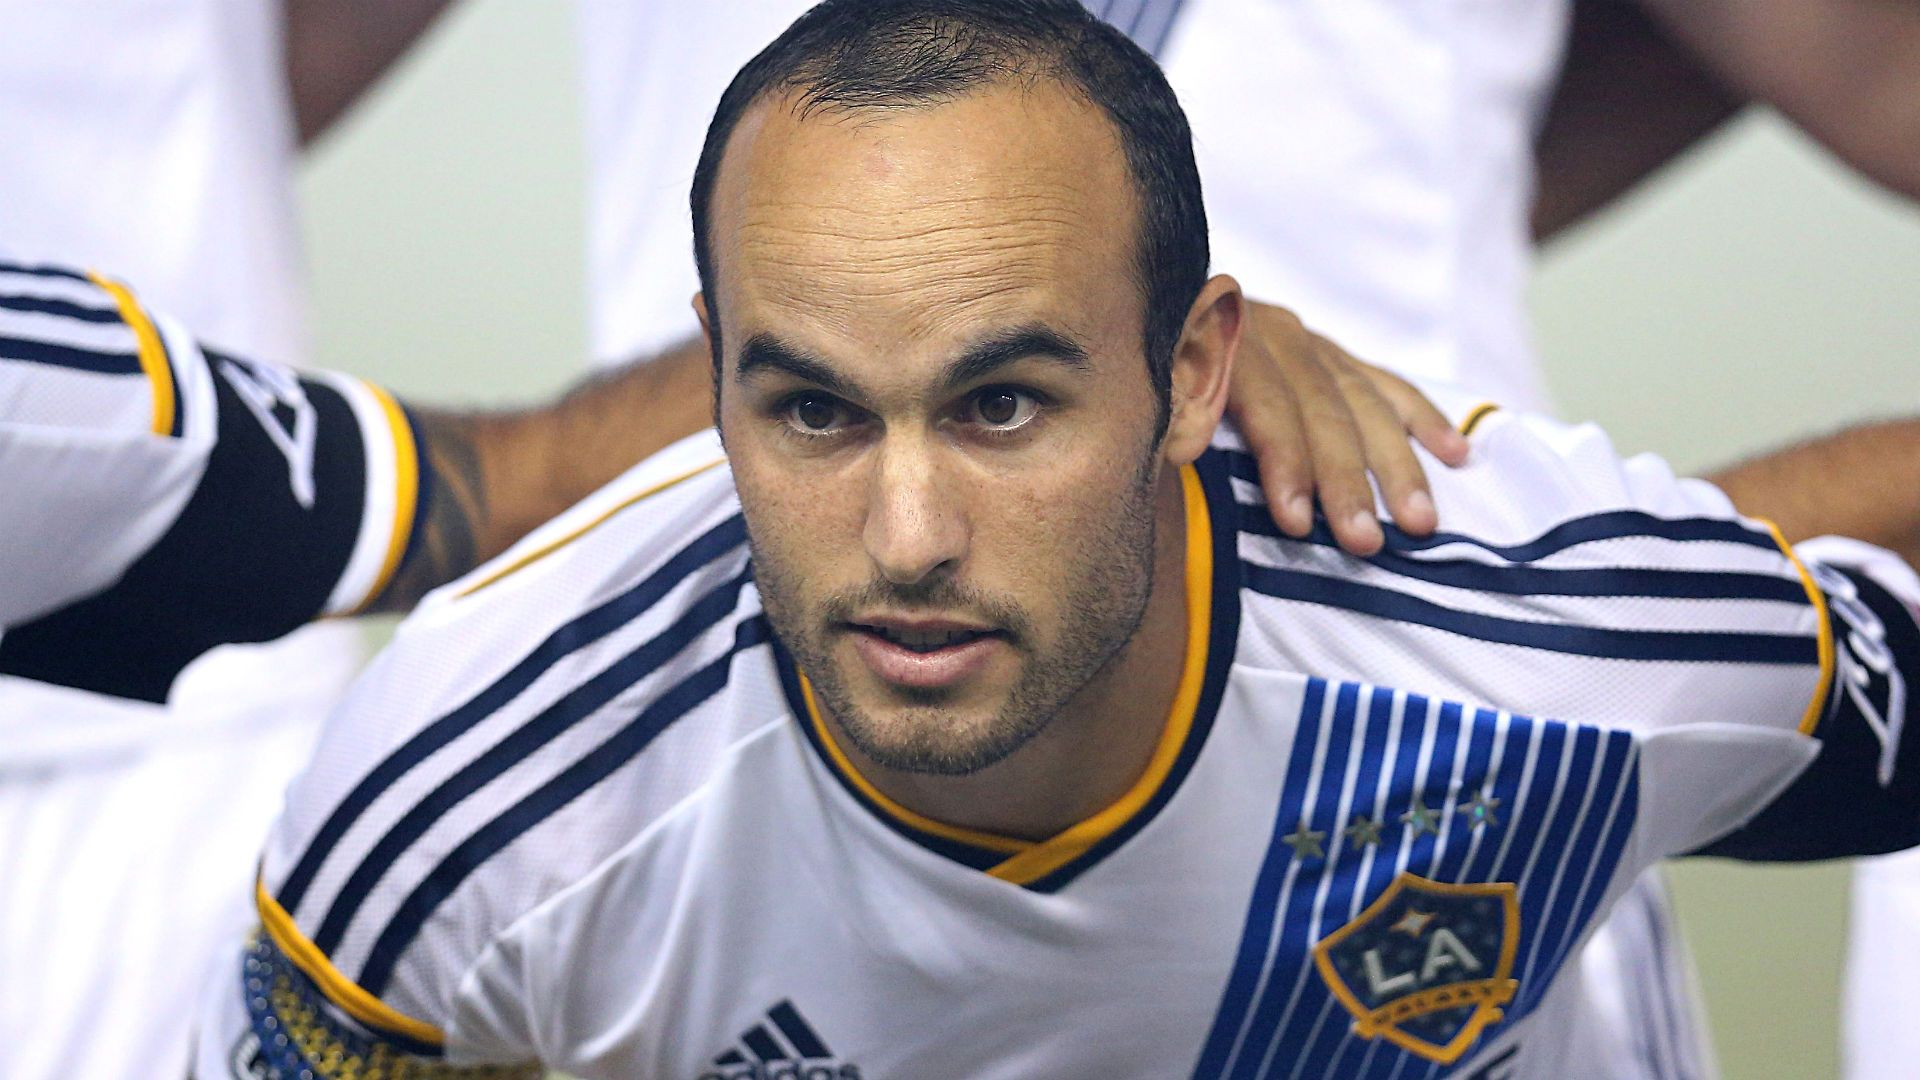 LA Galaxy star Landon Donovan edges closer to all-time MLS assists ...